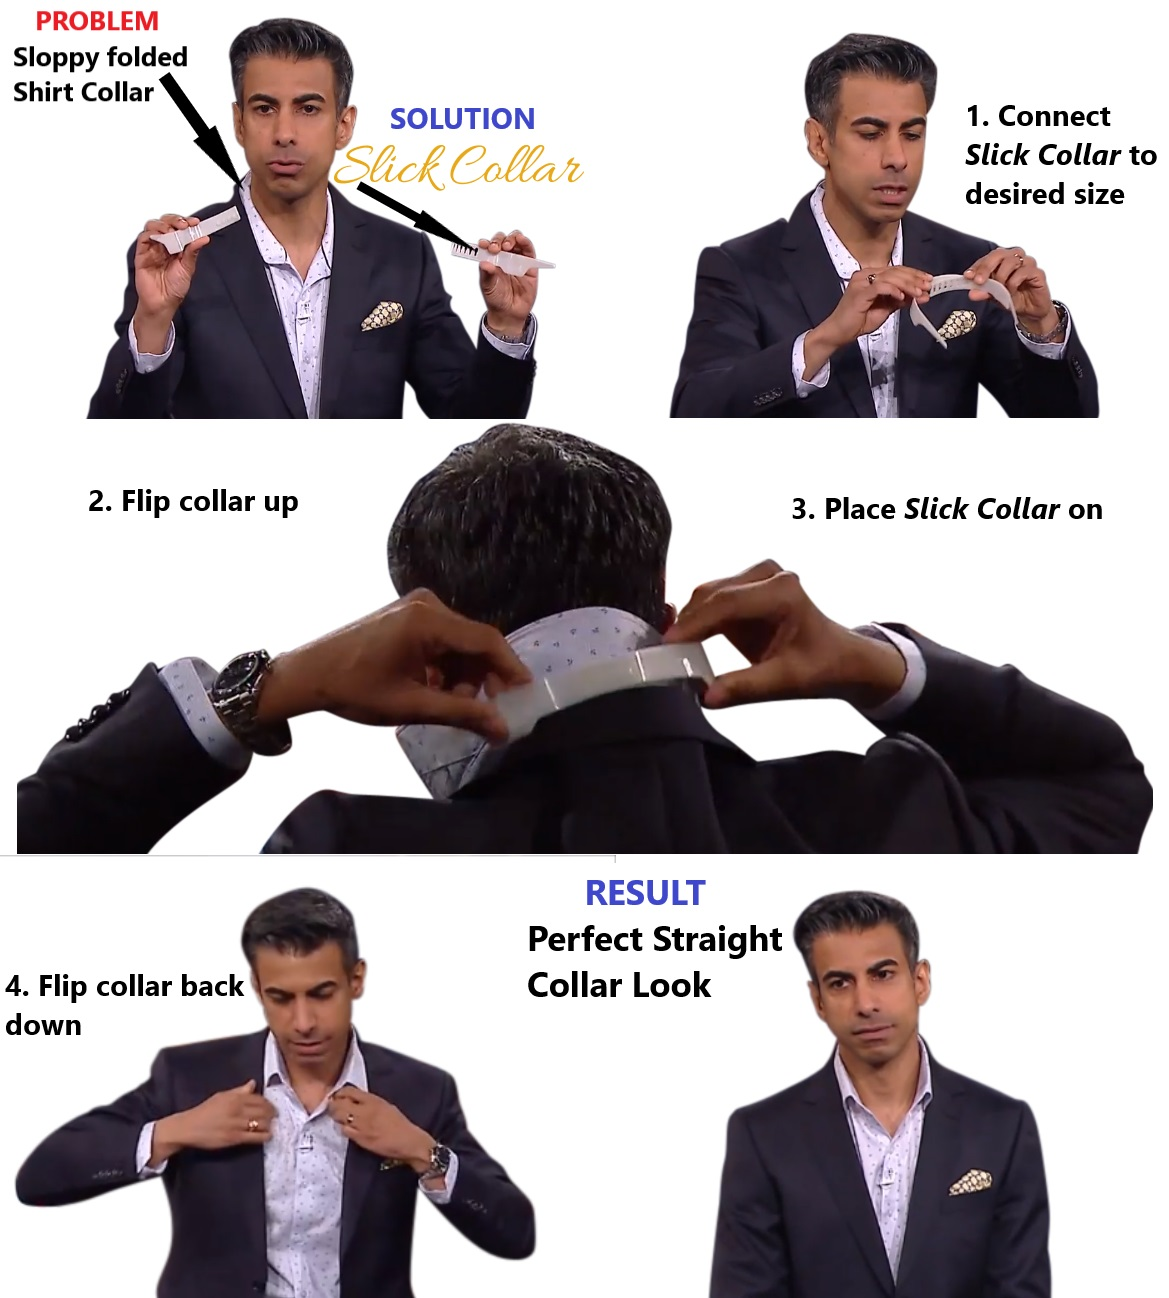 Perfect Shirt Collar Instantly with Slick Collar